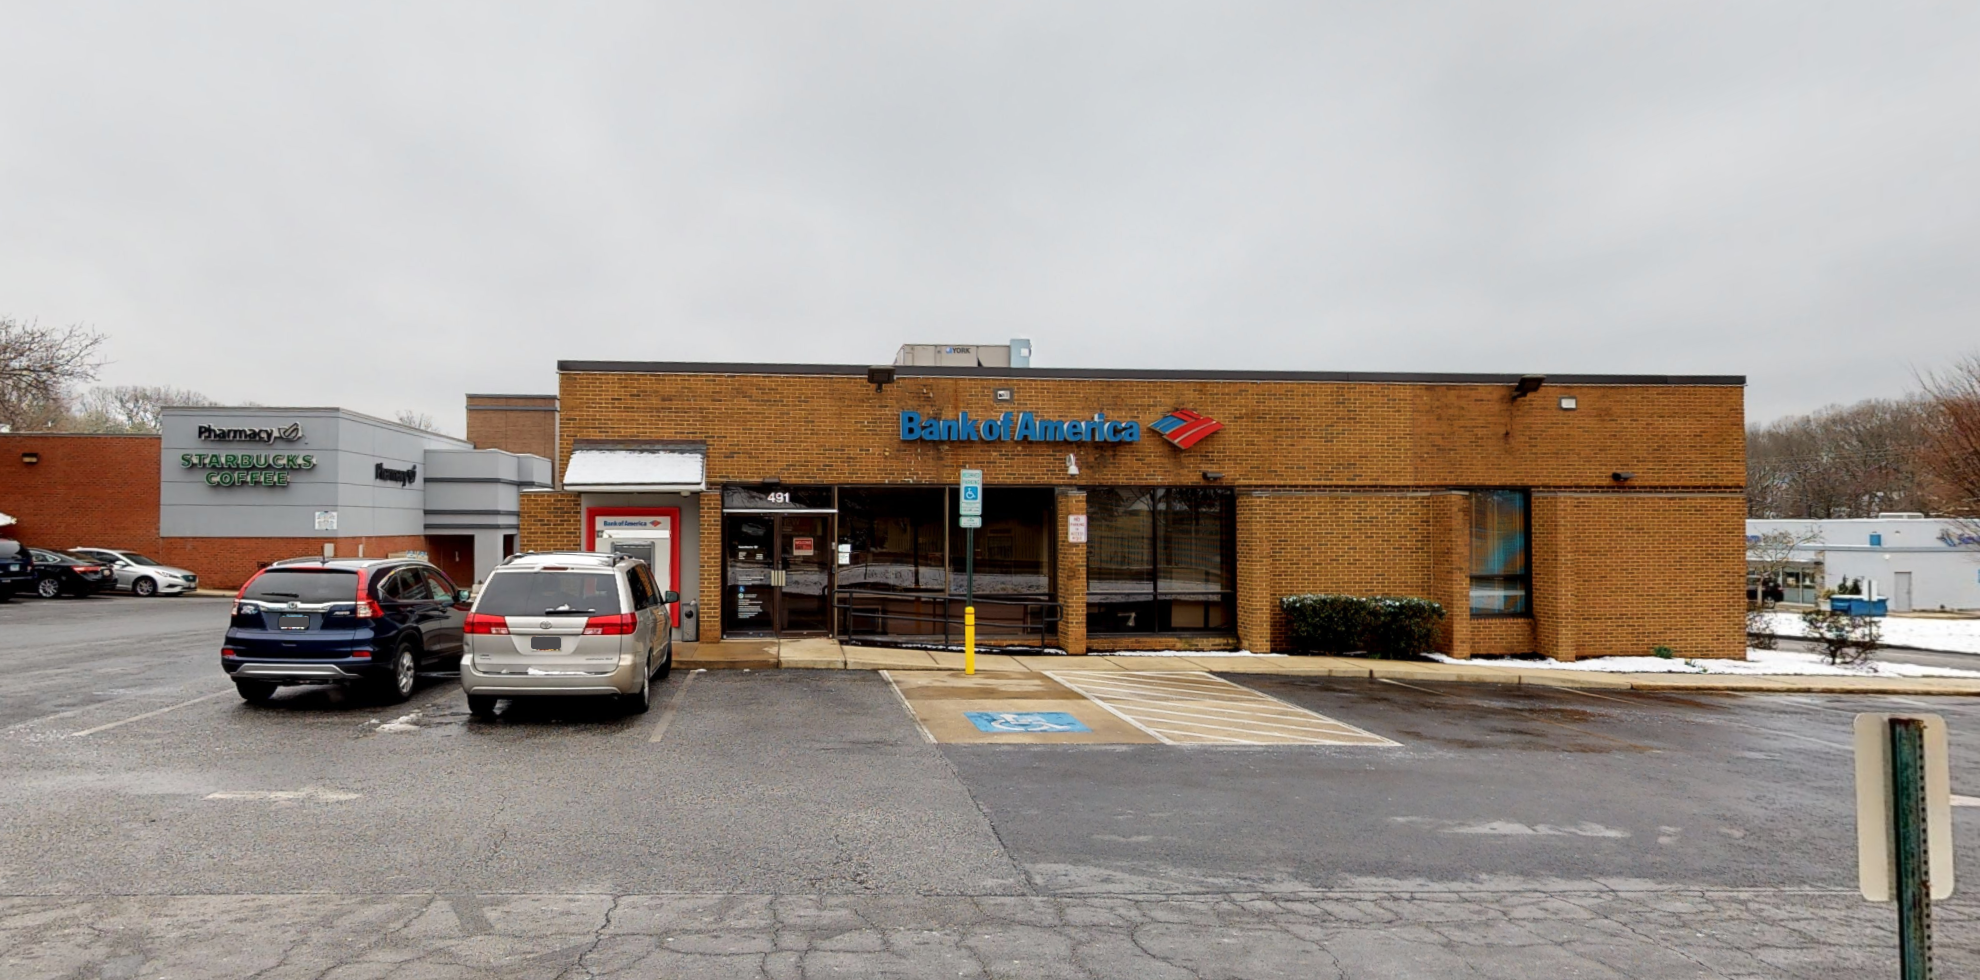 Bank of America financial center with drive-thru ATM | 491 Jumpers Hole Rd, Severna Park, MD 21146